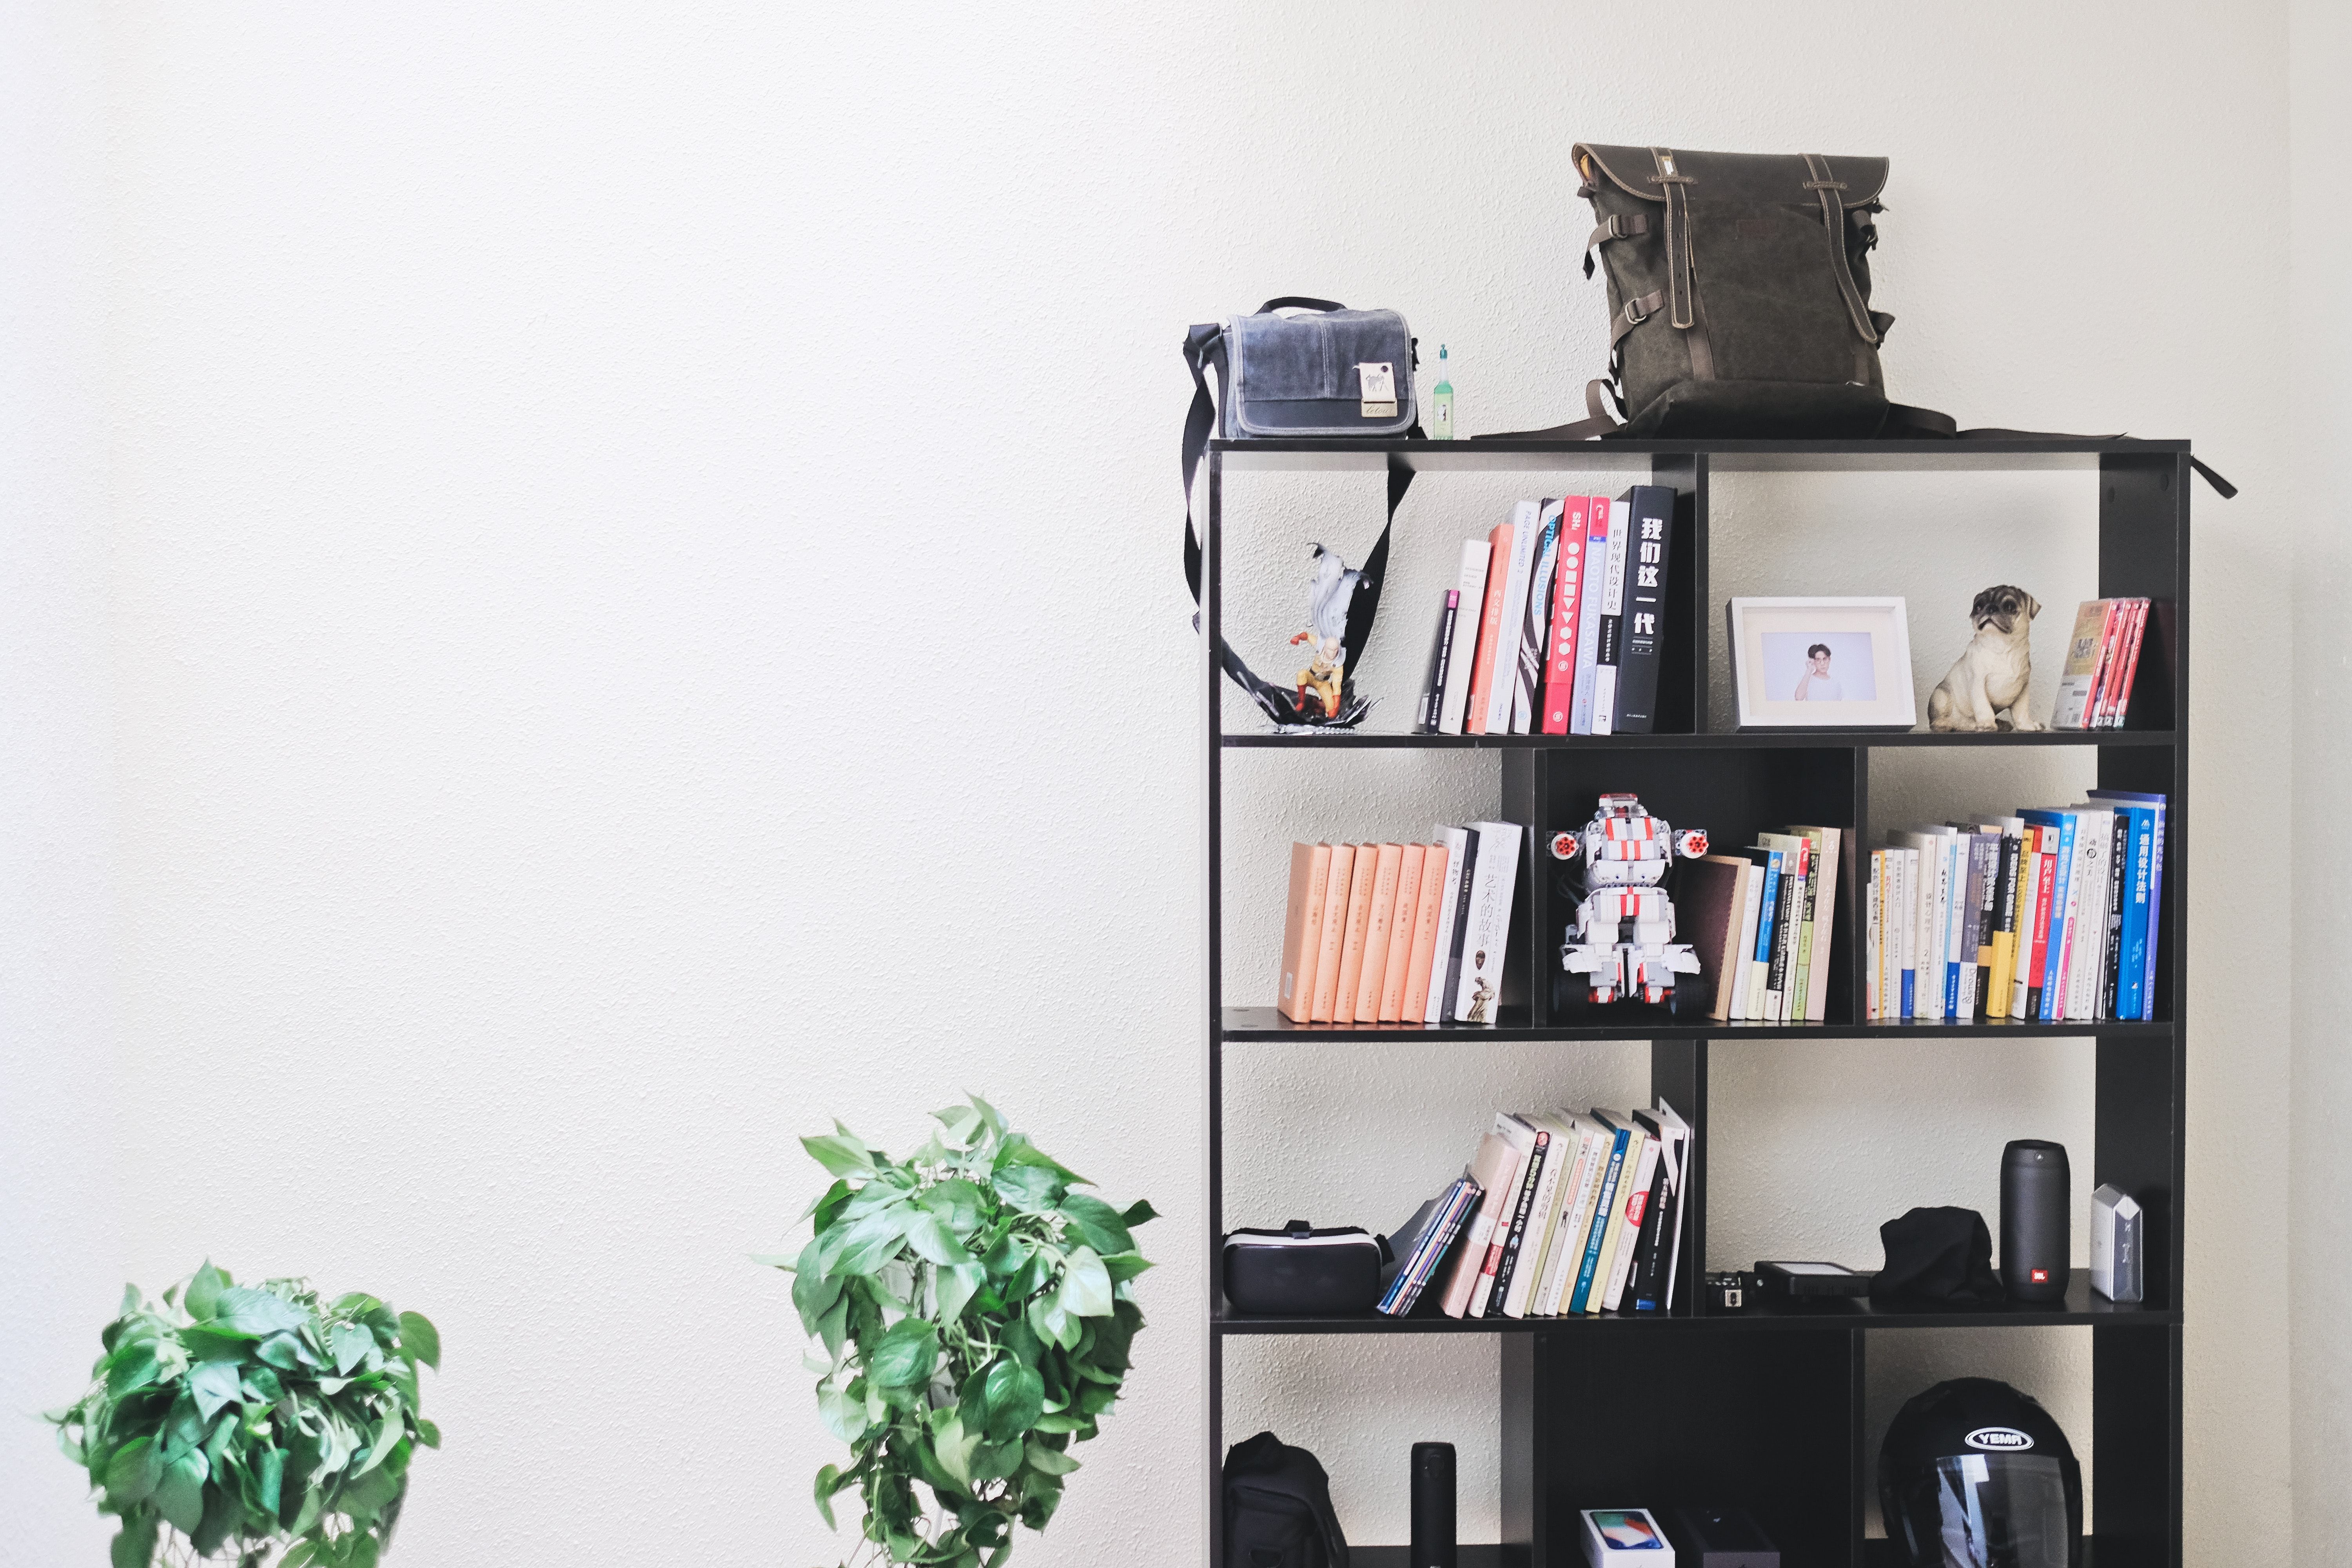 Books, bags and other things on a shelf